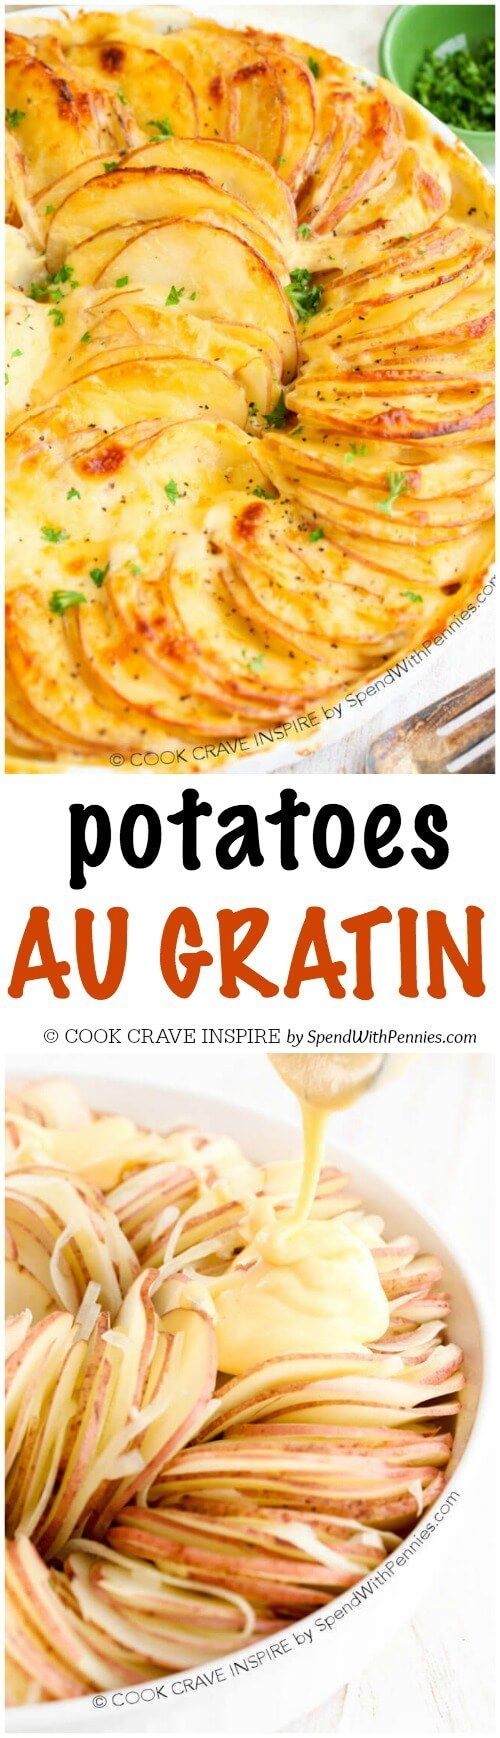 Potatoes Au Gratin is easy to make and is one of my favorite side dishes. This cheesy potato casserole has layers of thin potatoes with a quick homemade cheese sauce and is baked until browned and bubbly! Pretty enough for guests, easy enough for any day of the week!